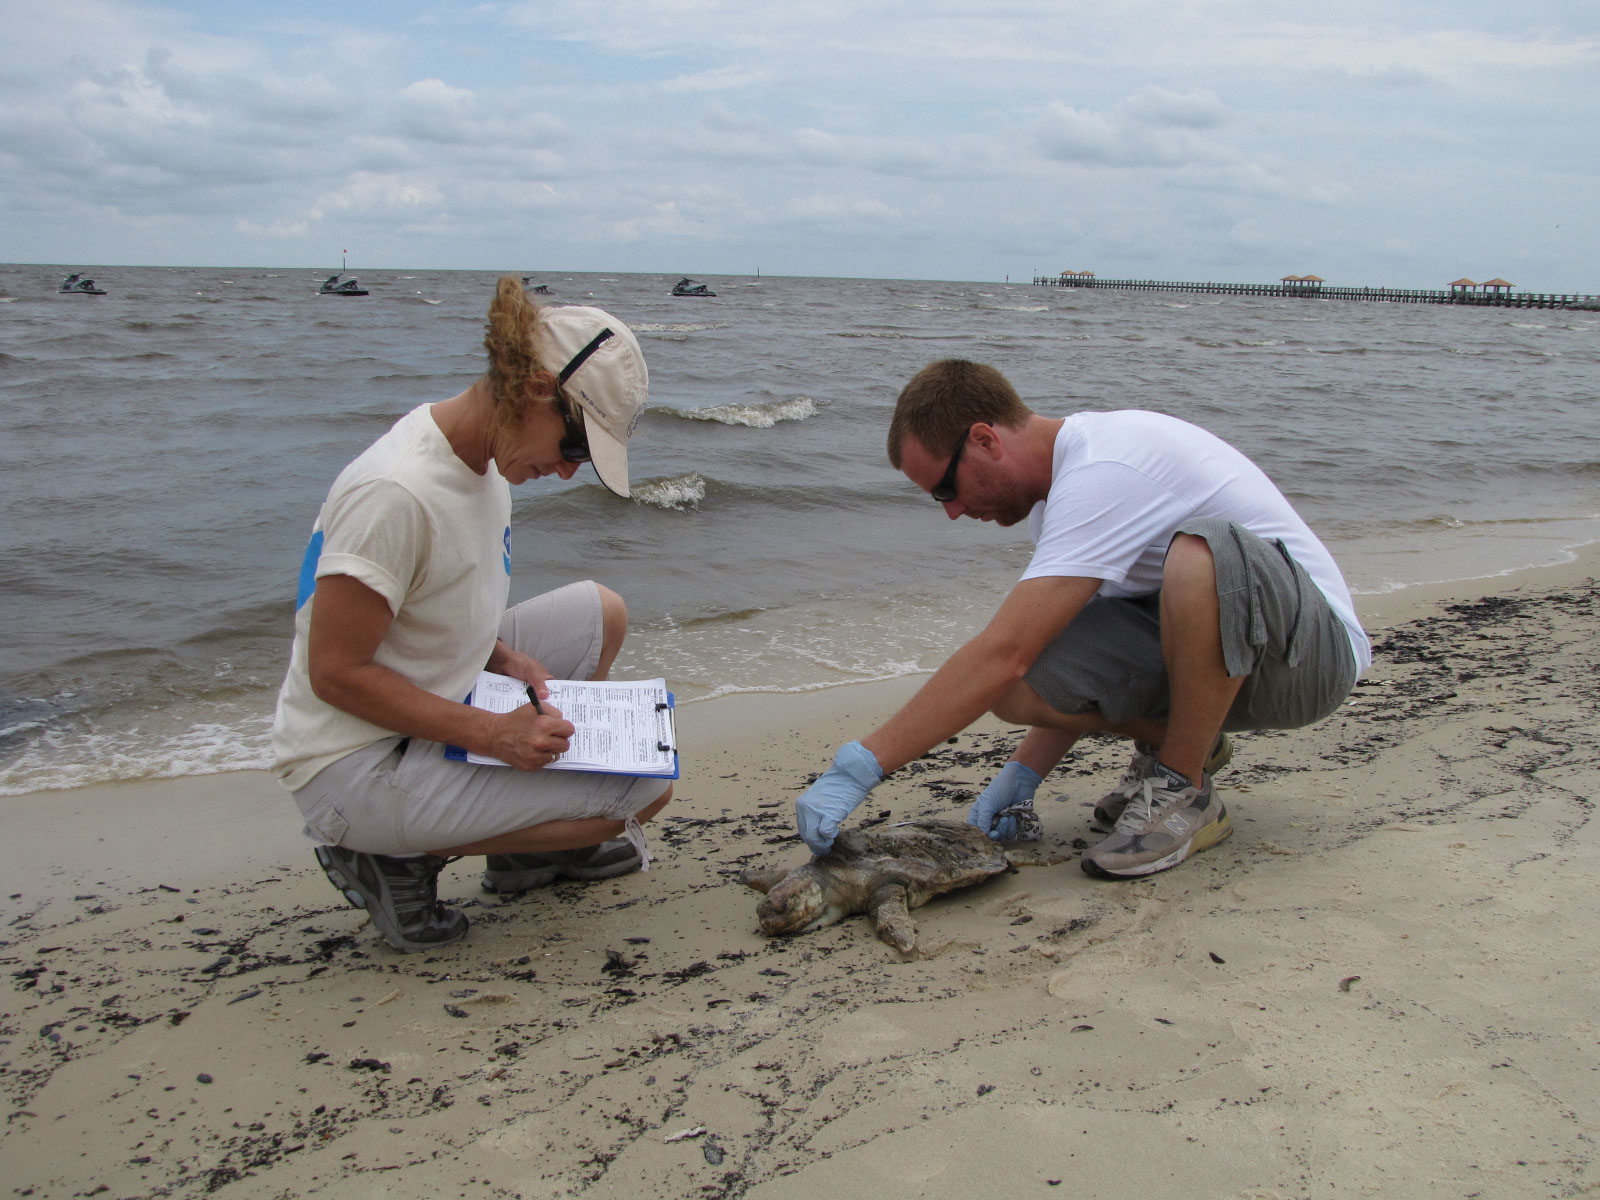 Drs. T. Todd Jones and Yonat Swimmer of NOAA's Pacific Islands Fisheries Science Center collect data on a dead Kemp's ridley that was reported through the Mississippi wildlife hotline. The data they collect will help establish the oil spill's full impact on sea turtles. © NOAA